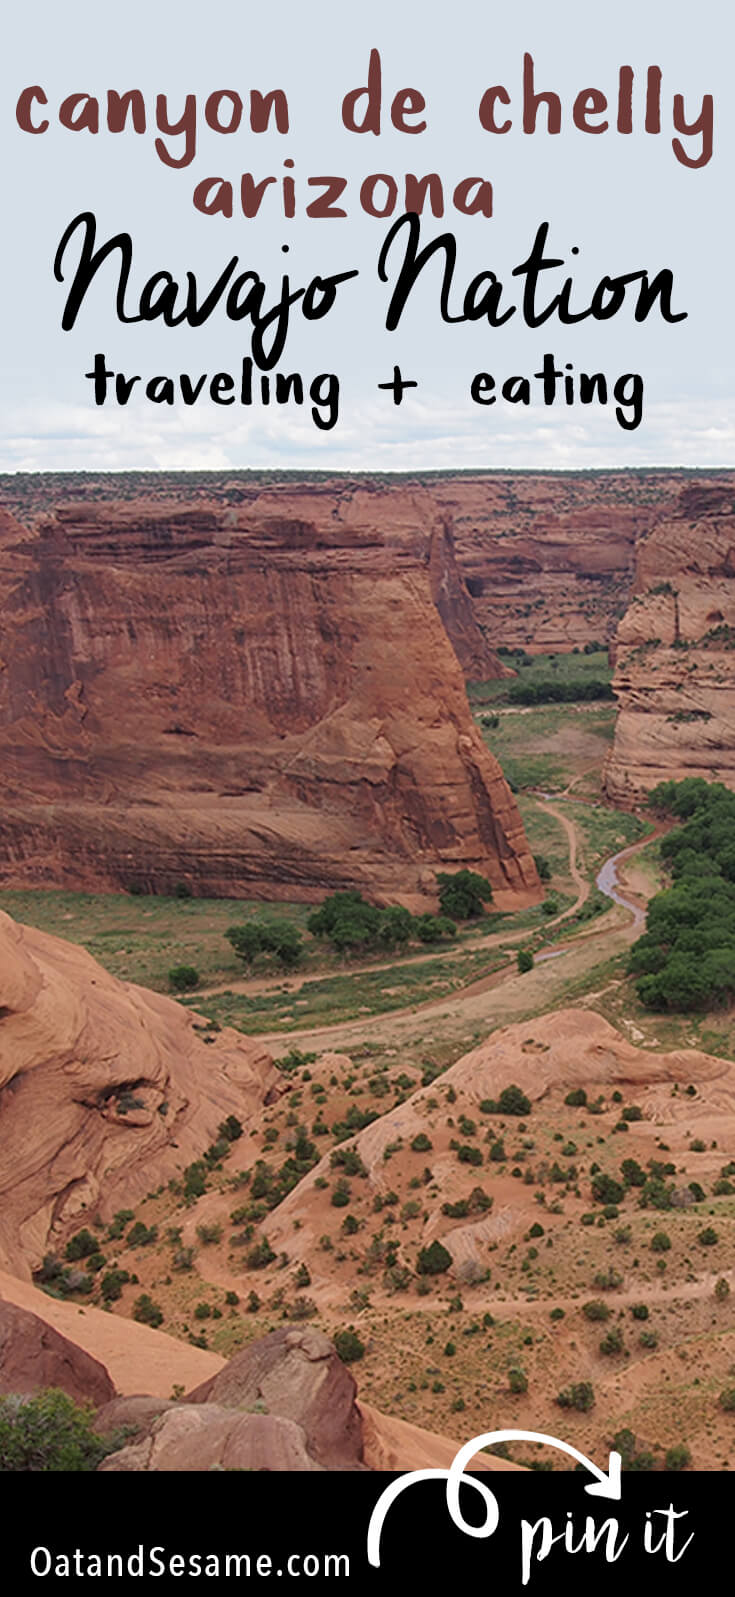 Traveling + Eating Arizona - hiking and cultural adventures in the Navajo Nation including Canyon de Chelly + Hands on fry bread! | #ARIZONA | #NAVAJO | #WINDOWROCK | #CANYONdeCHELLY | #FRYBREAD | #Recipes at OatandSesame.com